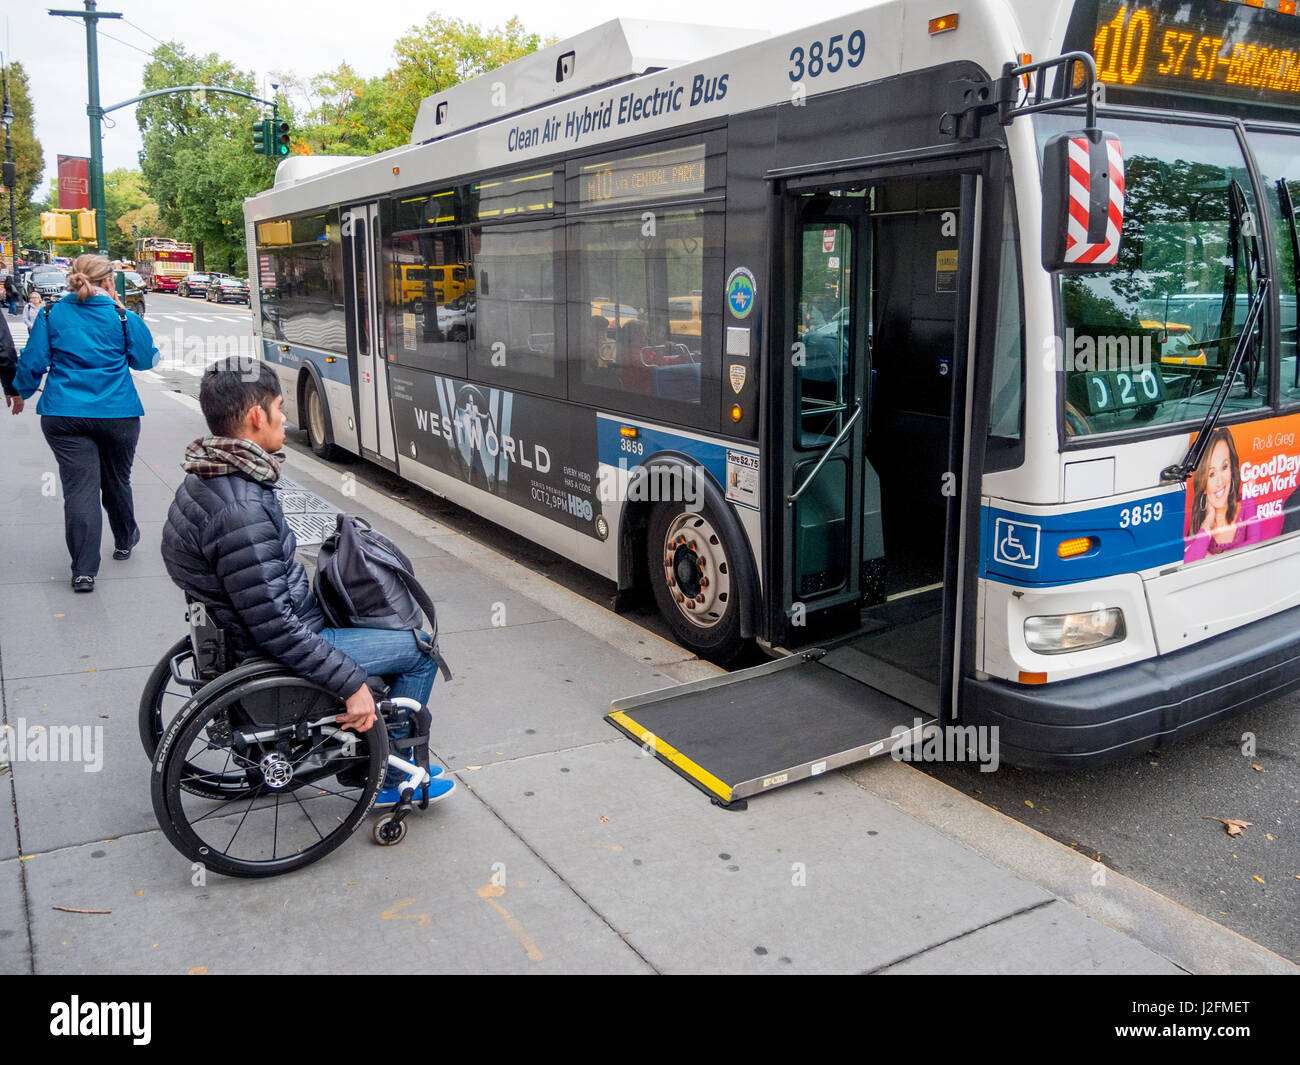 a city bus extends a handicapped ramp for a wheelchair user at a bus